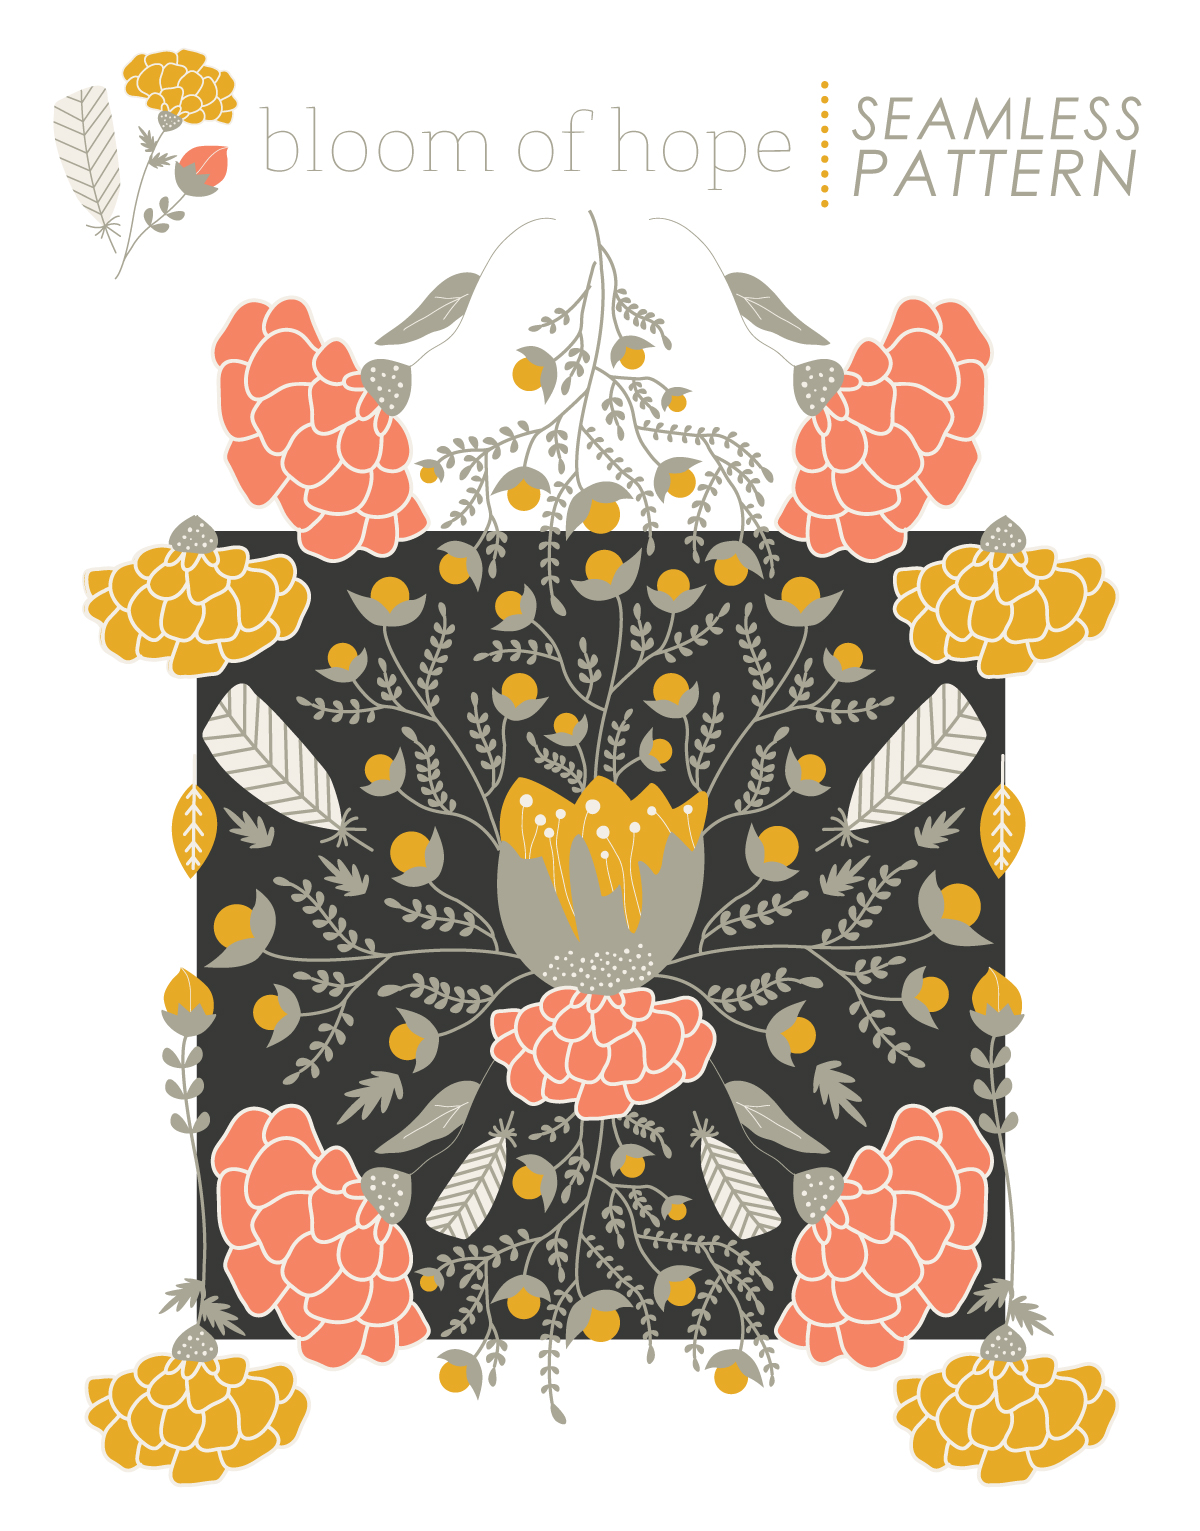 Seamless Pattern for Bloom of Hope // Fabric + Surface Pattern Design by Whitney Todd of Jitney's Journeys